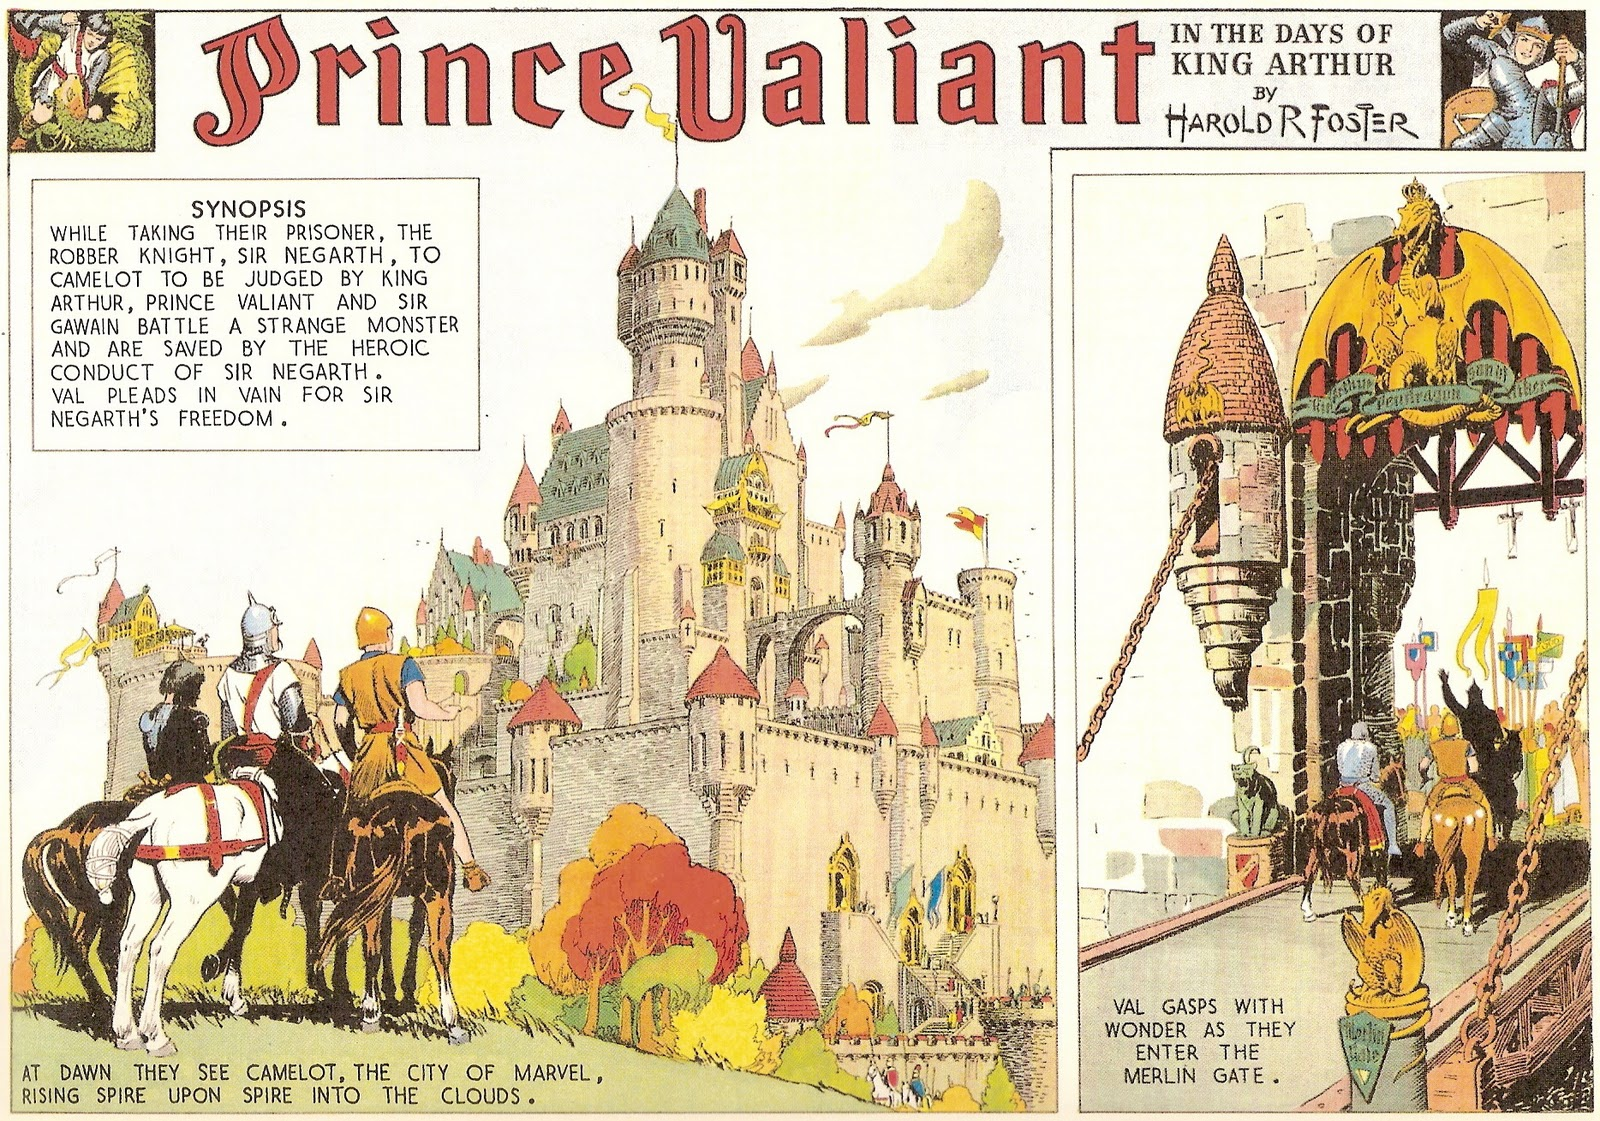 16. Prince Valiant in the Days of Arthur